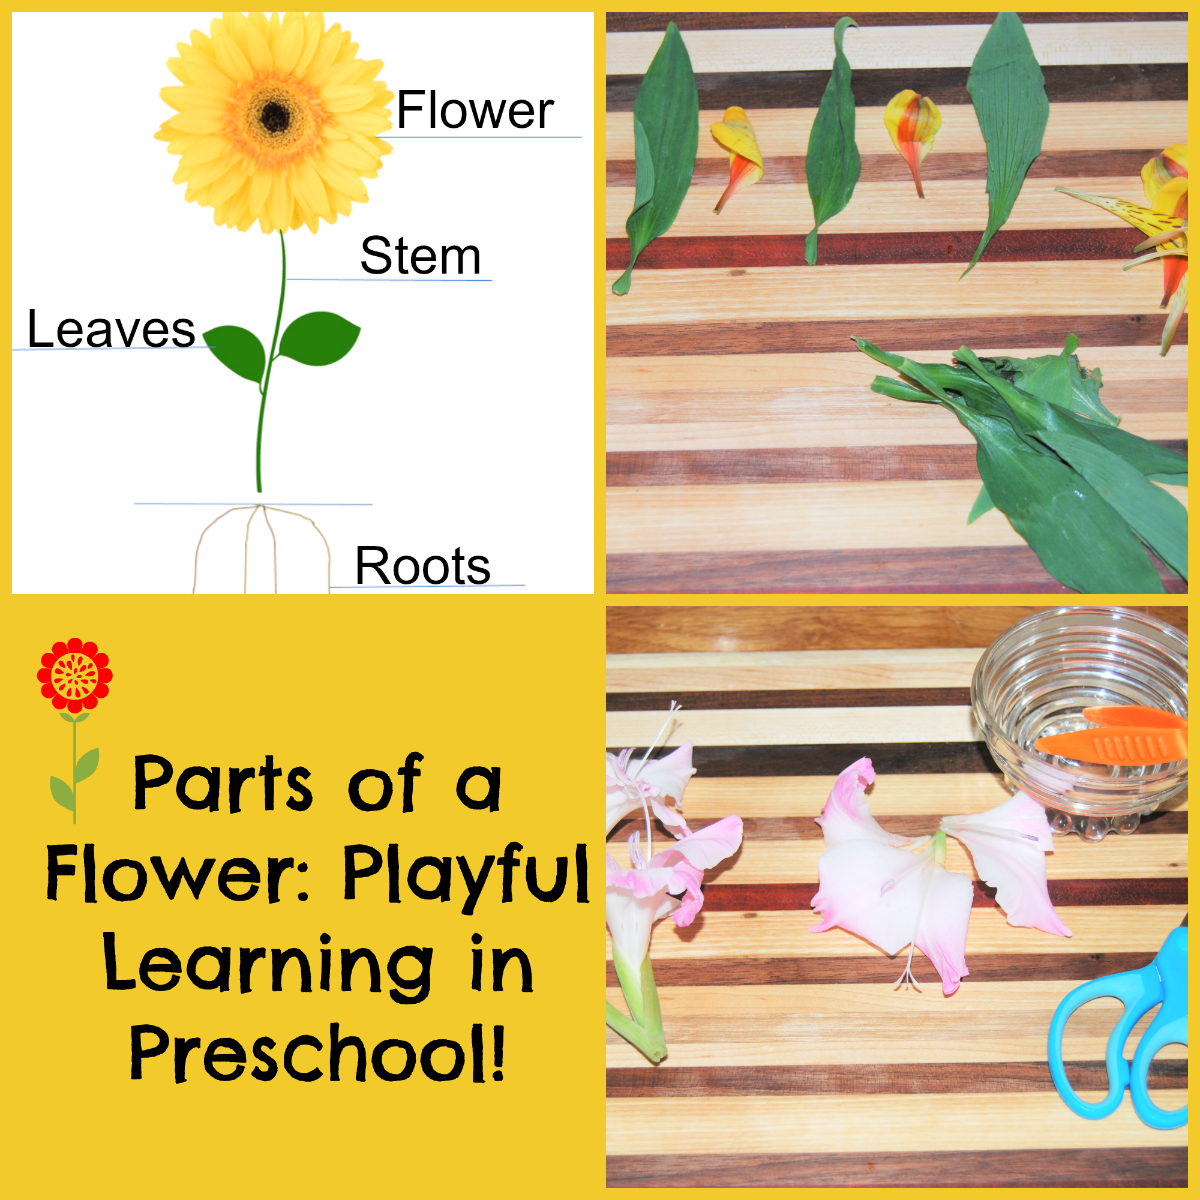 Parts Of A Flower Playful Learning Flower Centers For Preschoolers The Preschool Toolbox Blog